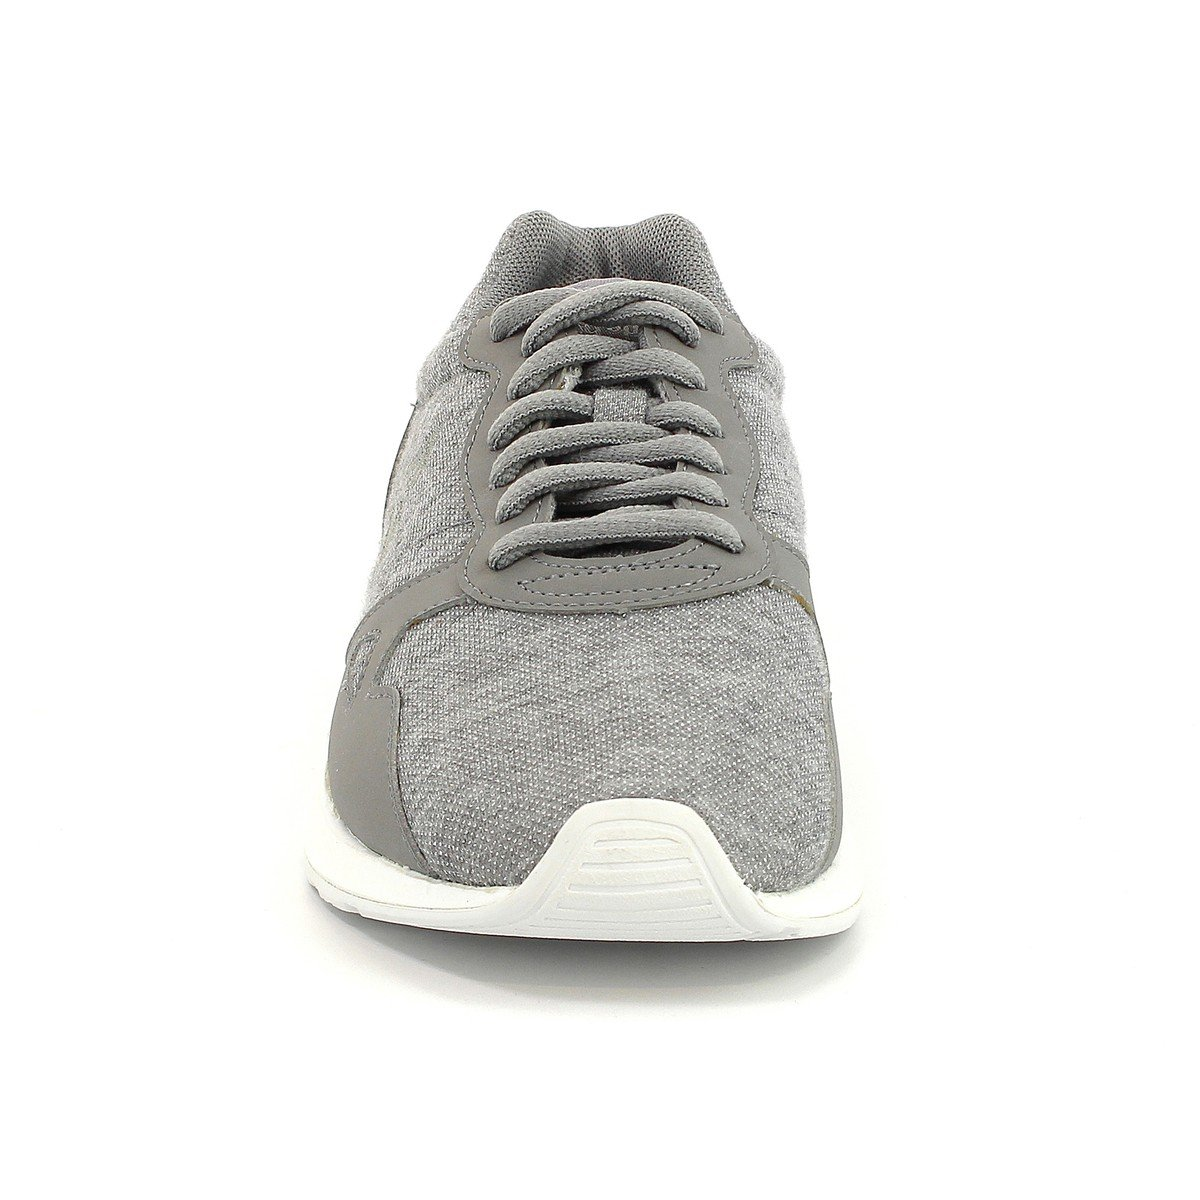 LE COQ SPORTIF Womens LCS R600 Summer Glitter Trainers Grey Size 37